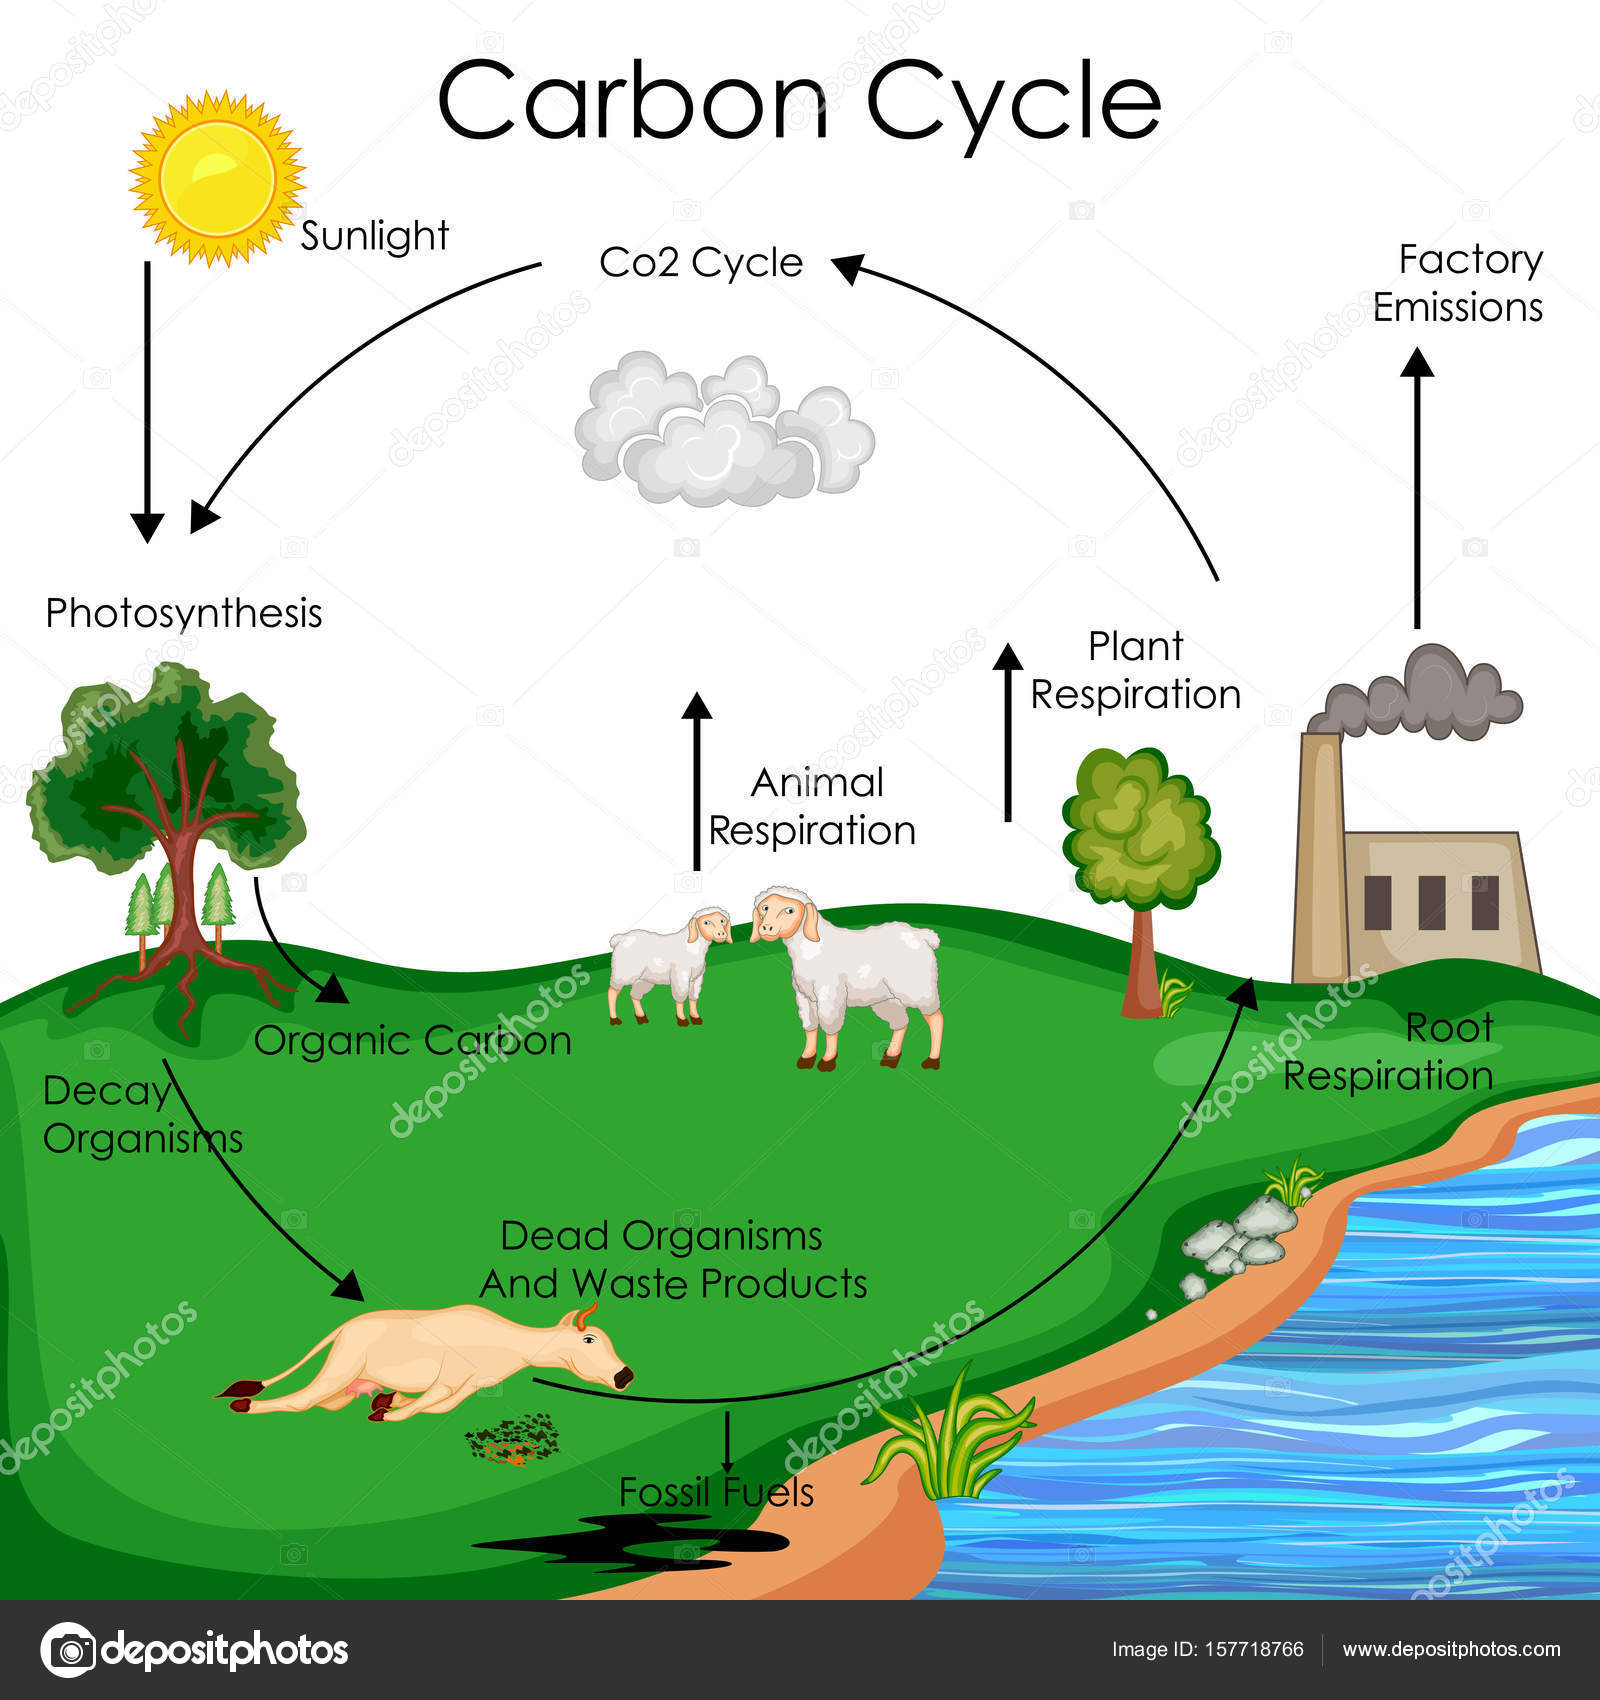 download carbon cycle diagram images how to guide and Writing Steps Diagram Expository Diagrams